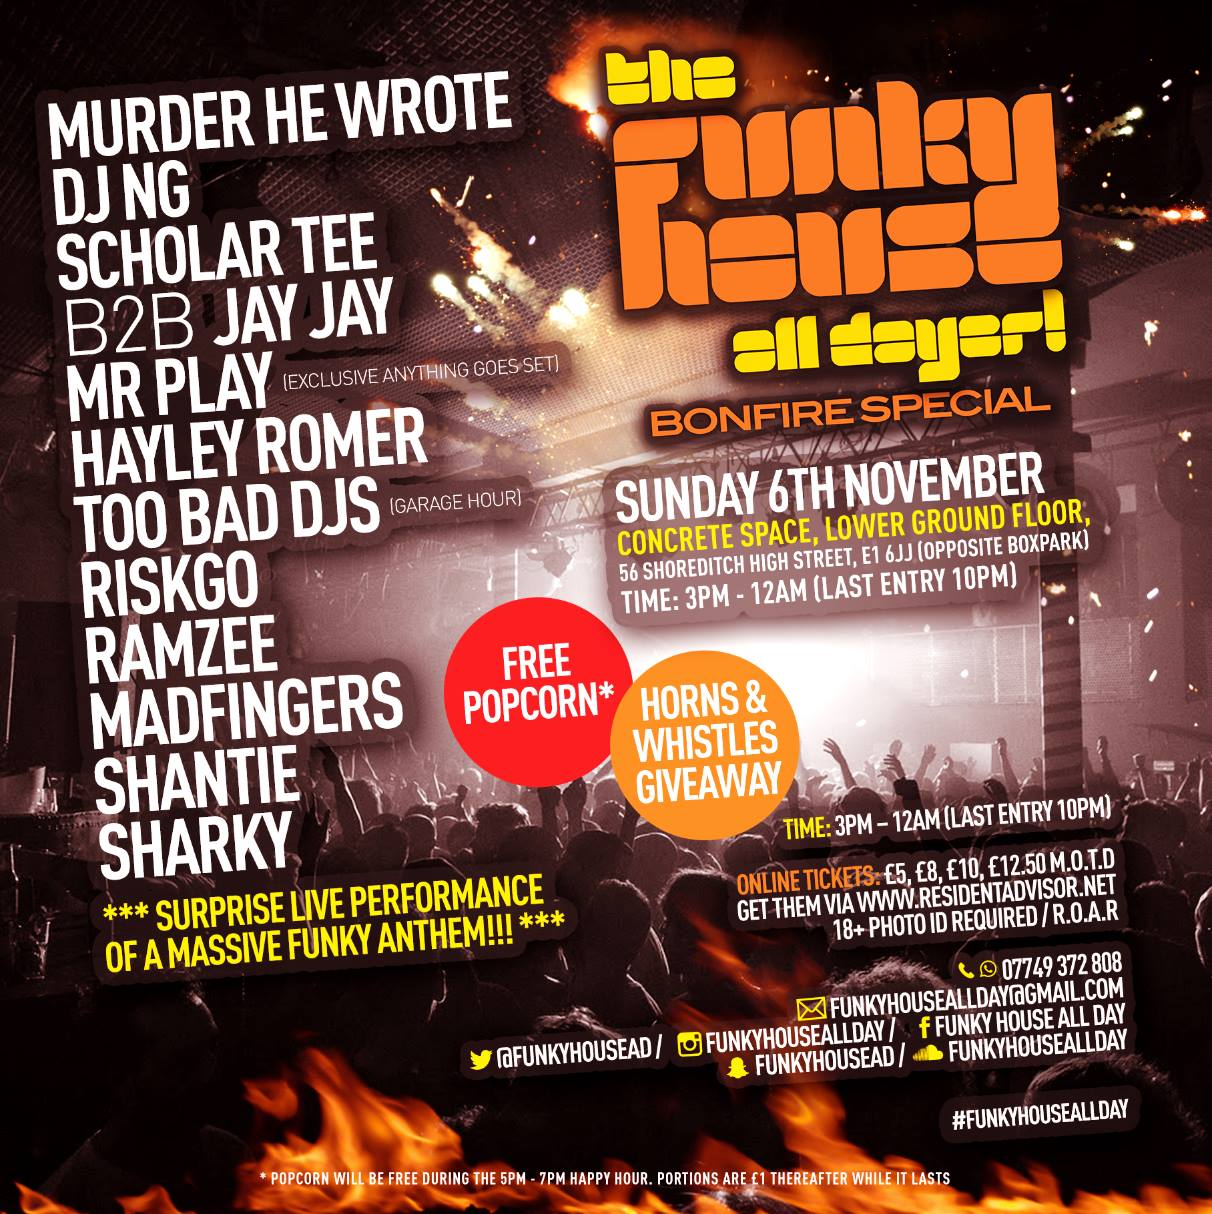 The Funky House All Dayer (Bonfire Special)